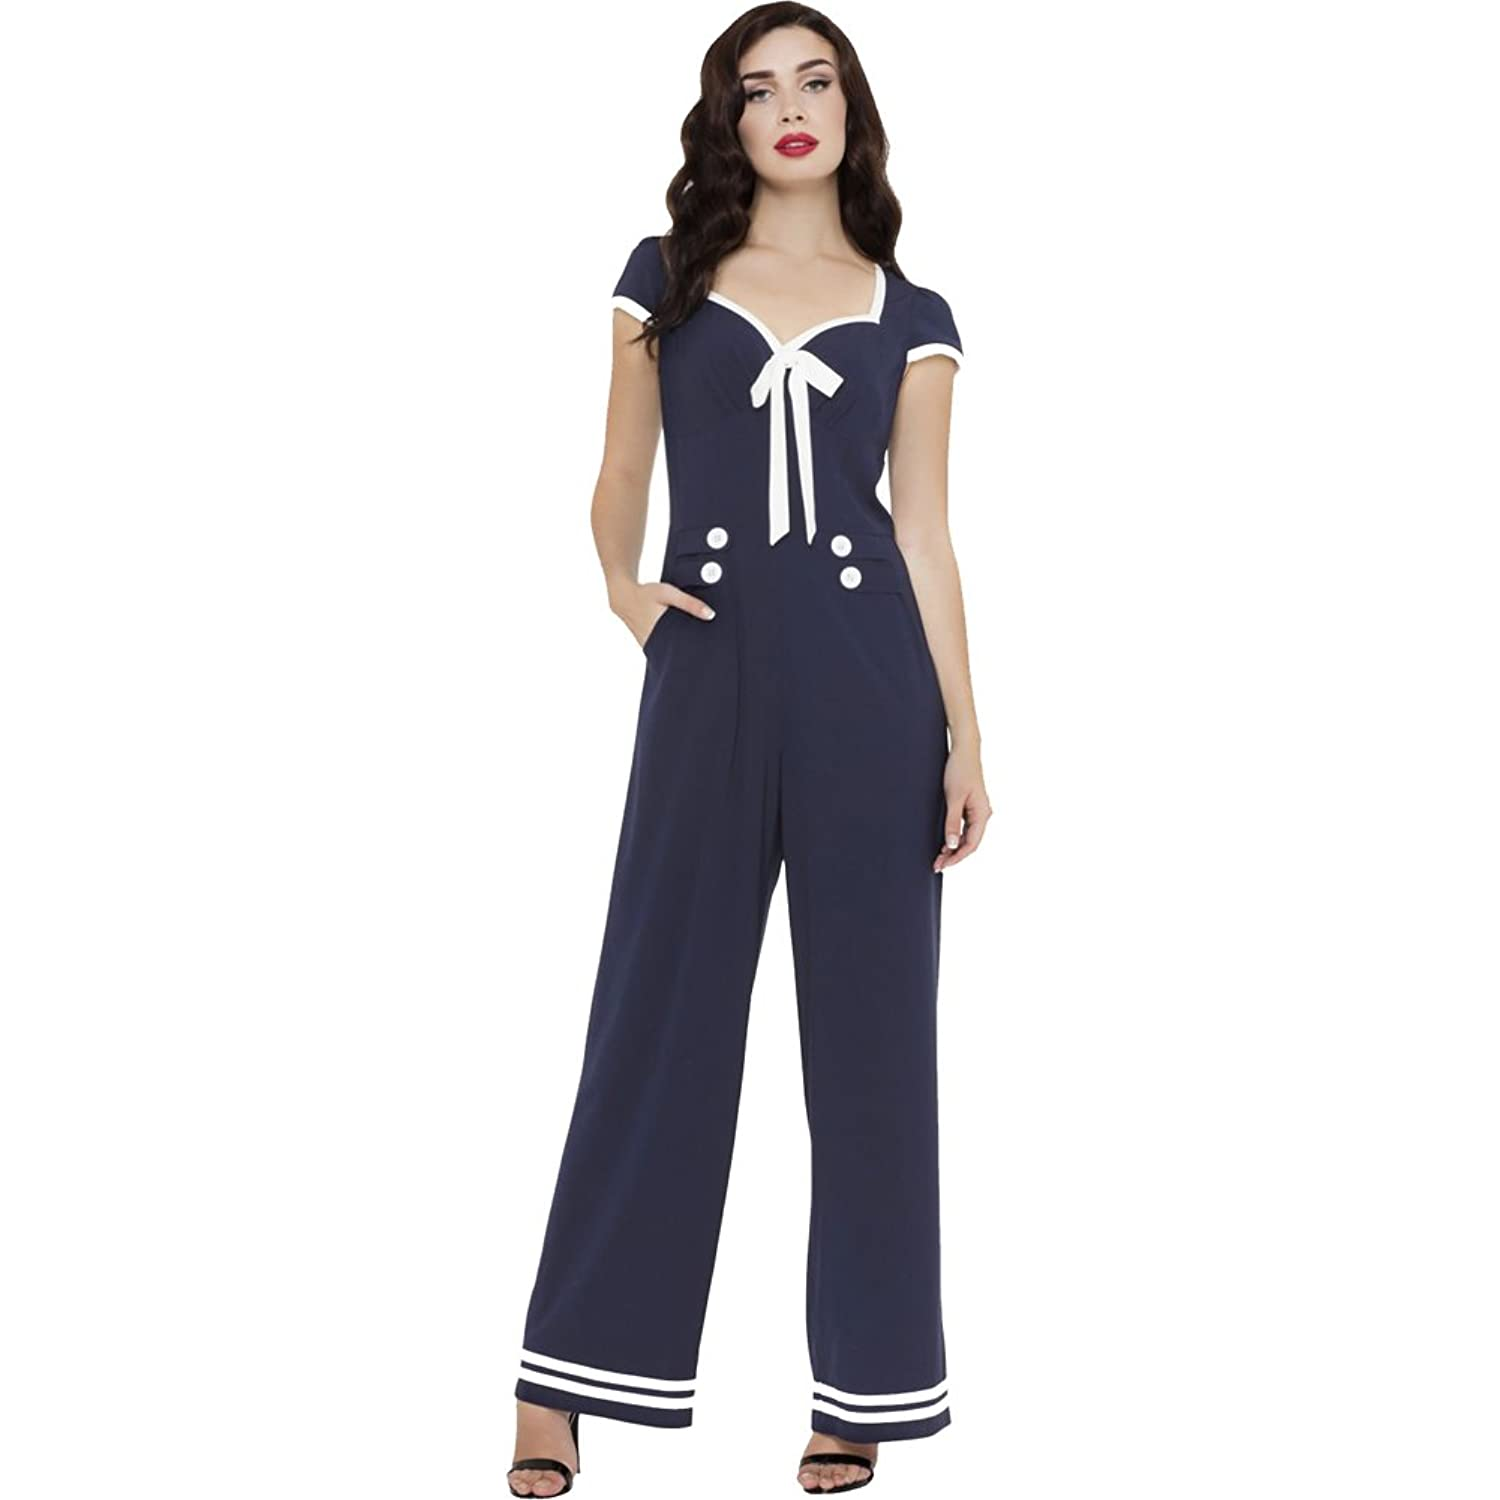 Vintage Overalls 1910s -1950s Pictures and History Womens Voodoo Vixen JOLENE Nautical Stripped Wide Leg Jumpsuit Navy $73.95 AT vintagedancer.com